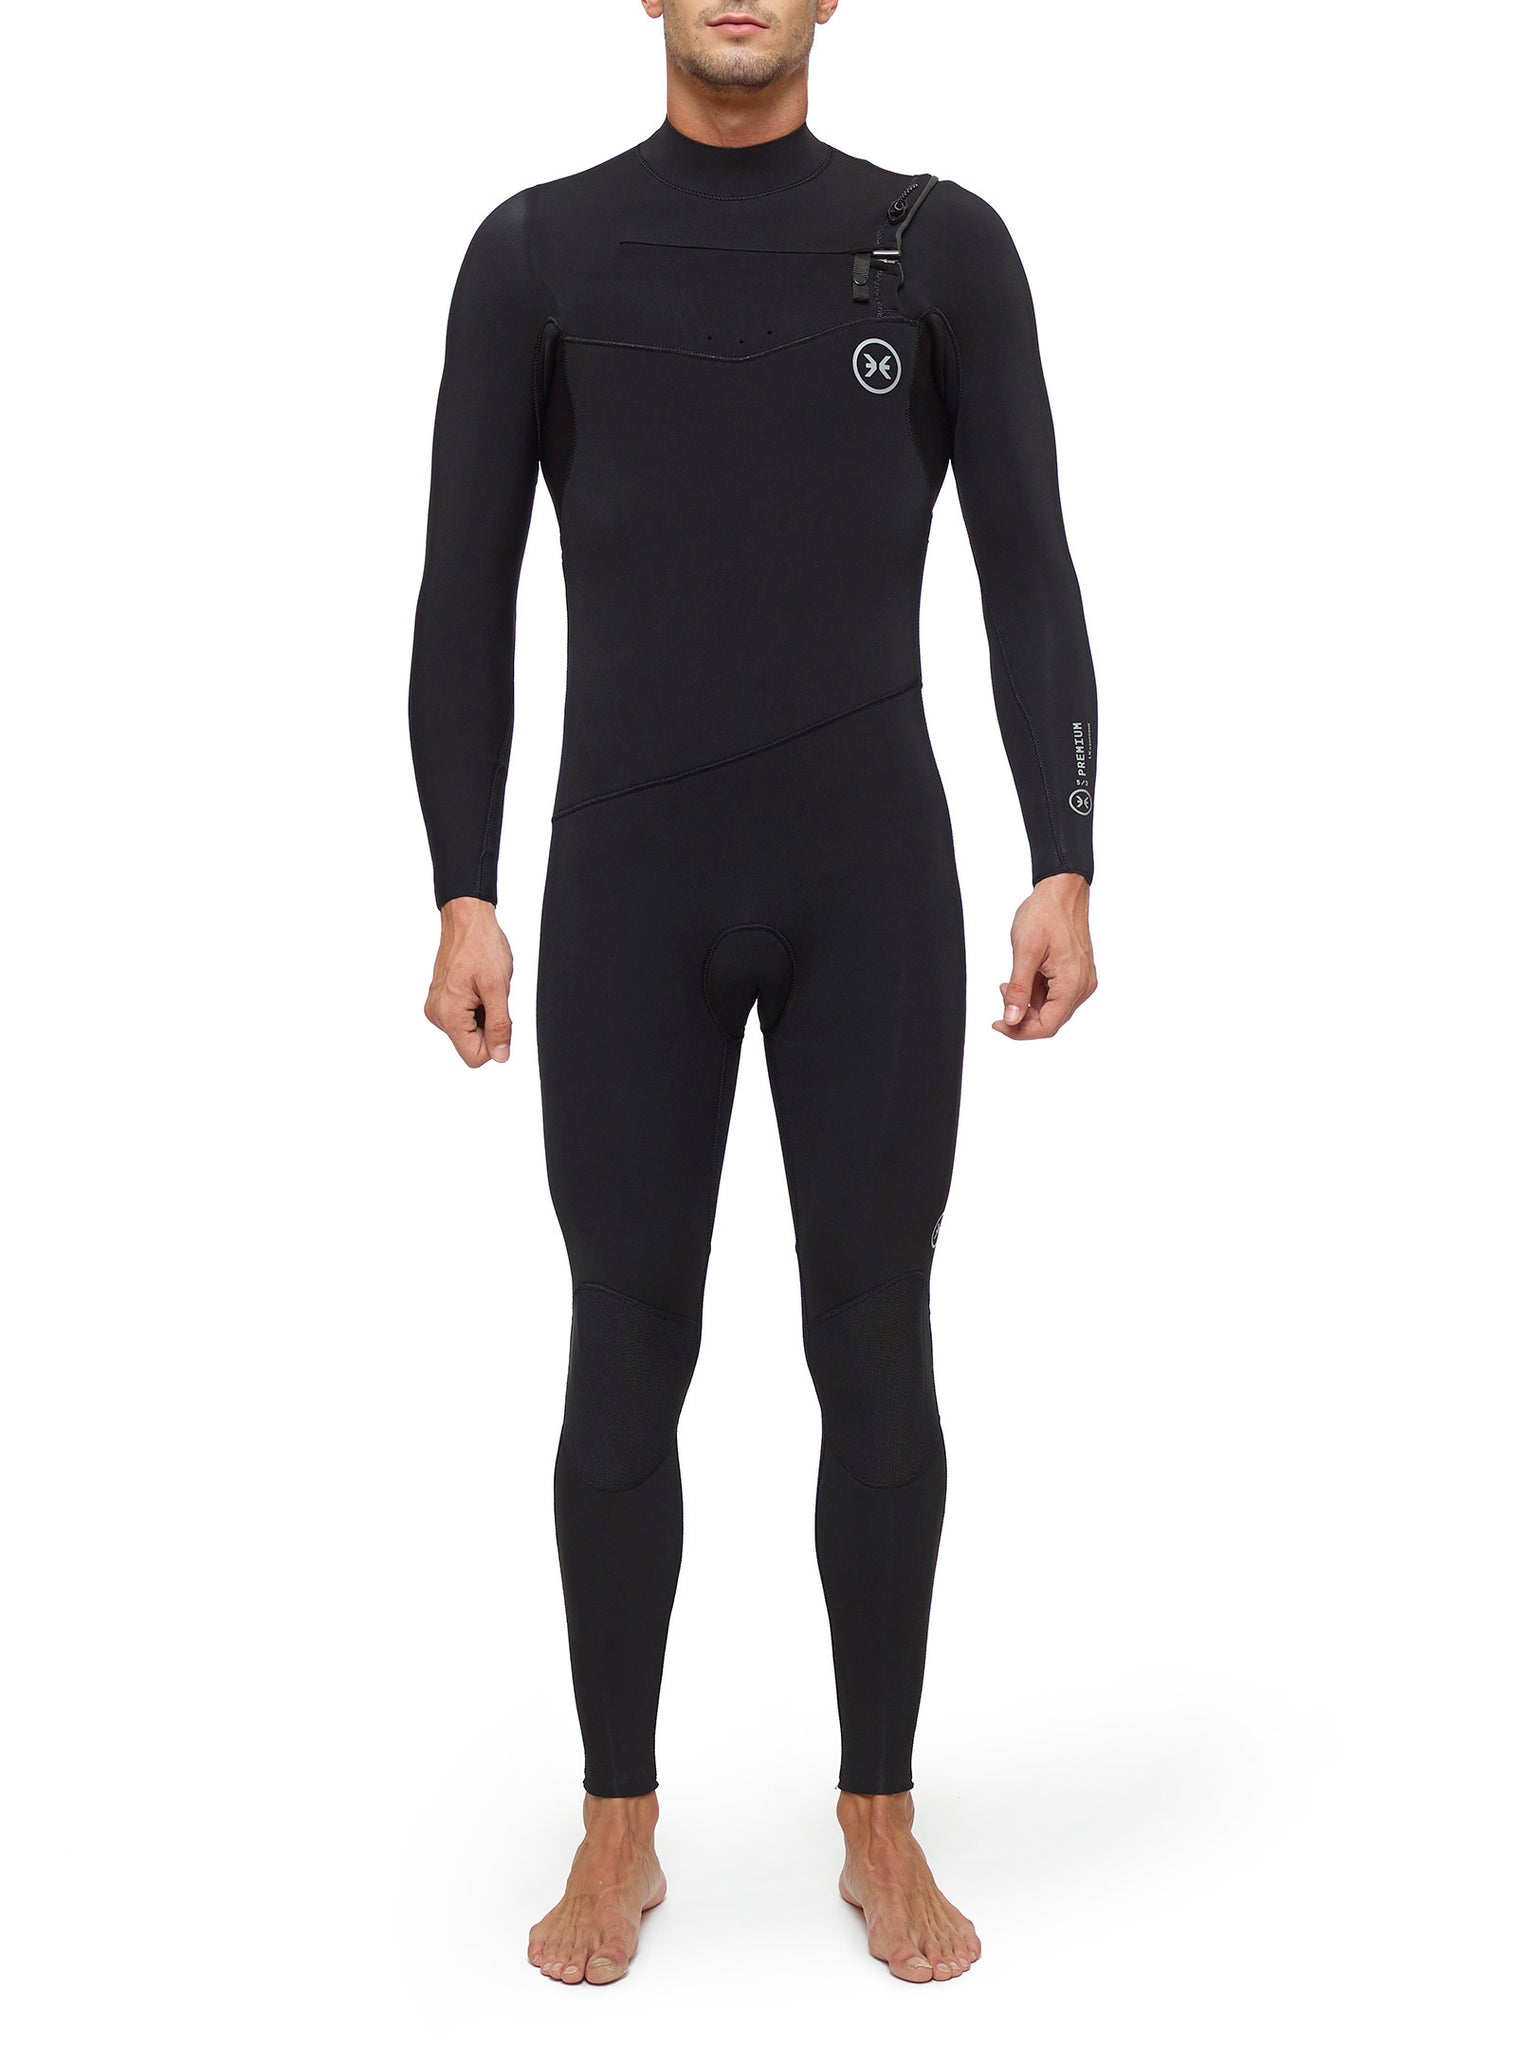 Combinaisons De Surf Homme Premium 5/3 Chest Zip Noir